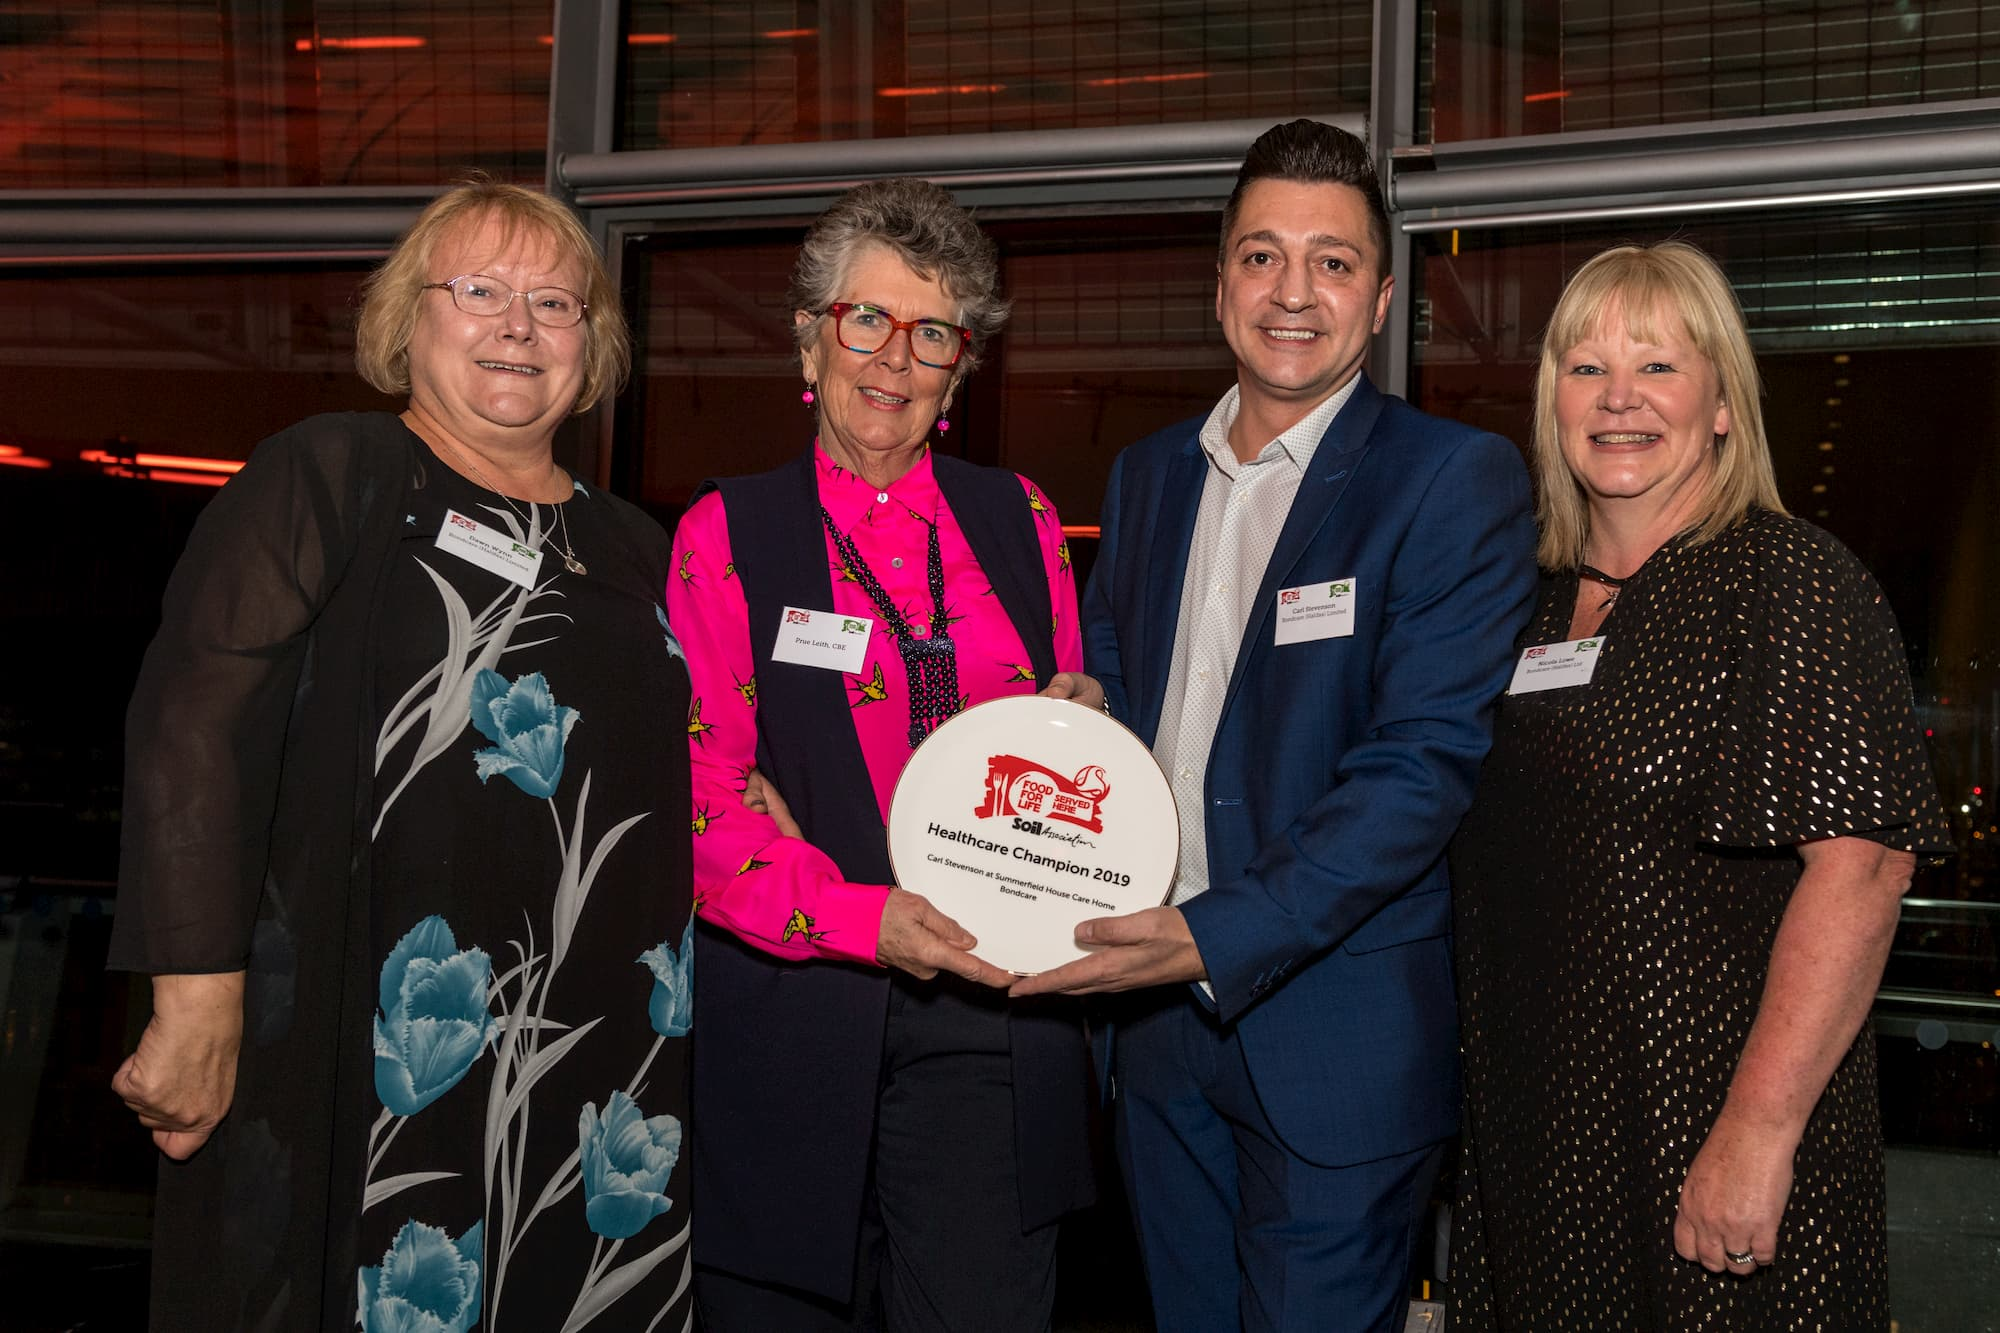 Summerfield House team receiving the award from Prue Leith